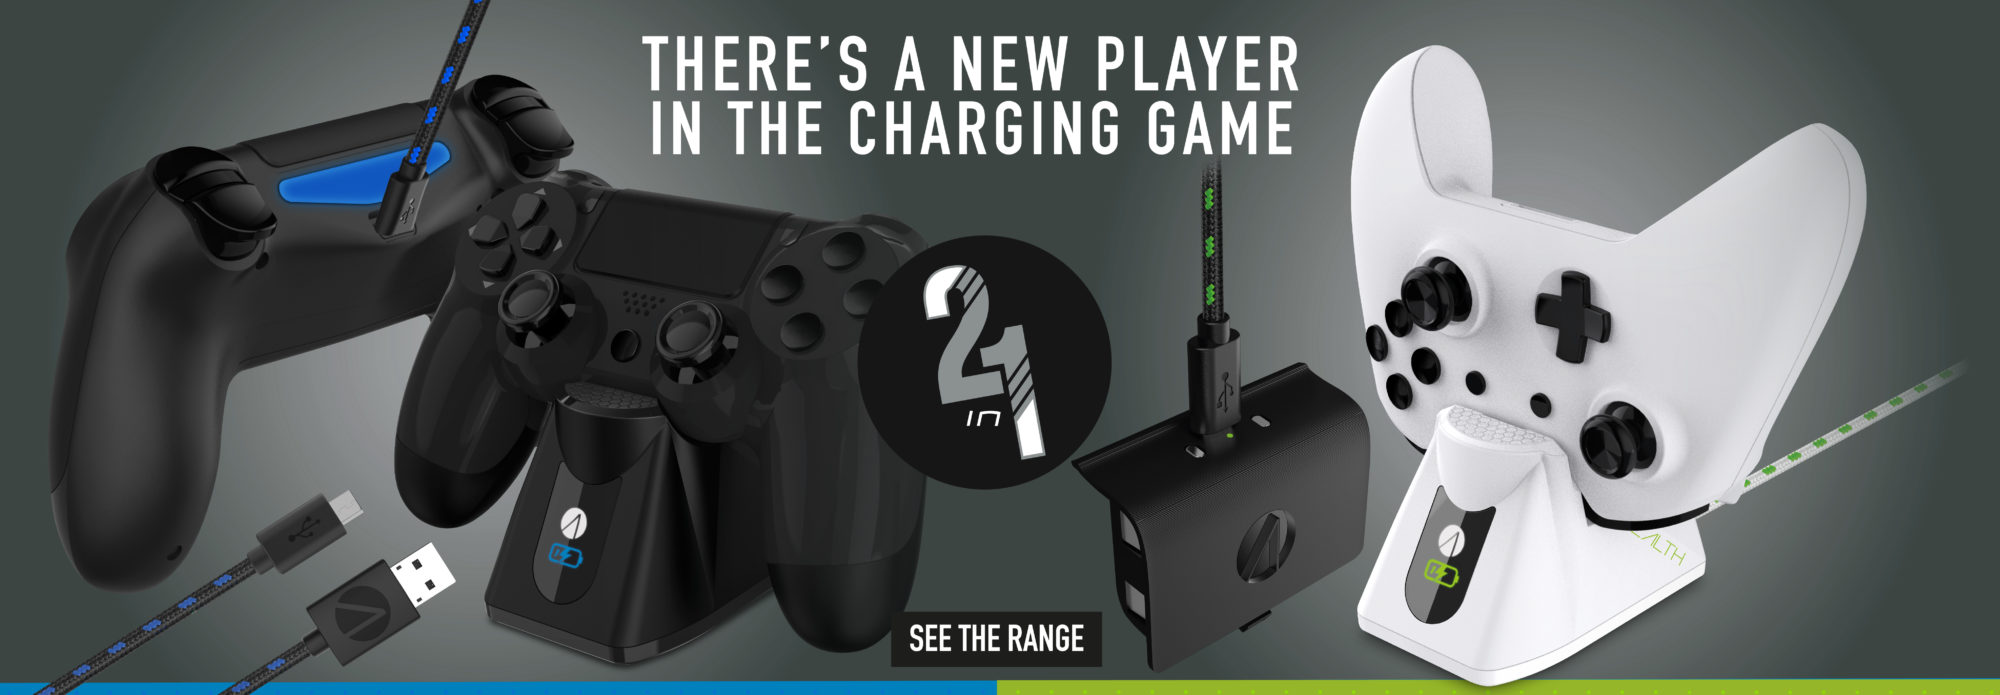 Introducing the STEALTH Charging Range!